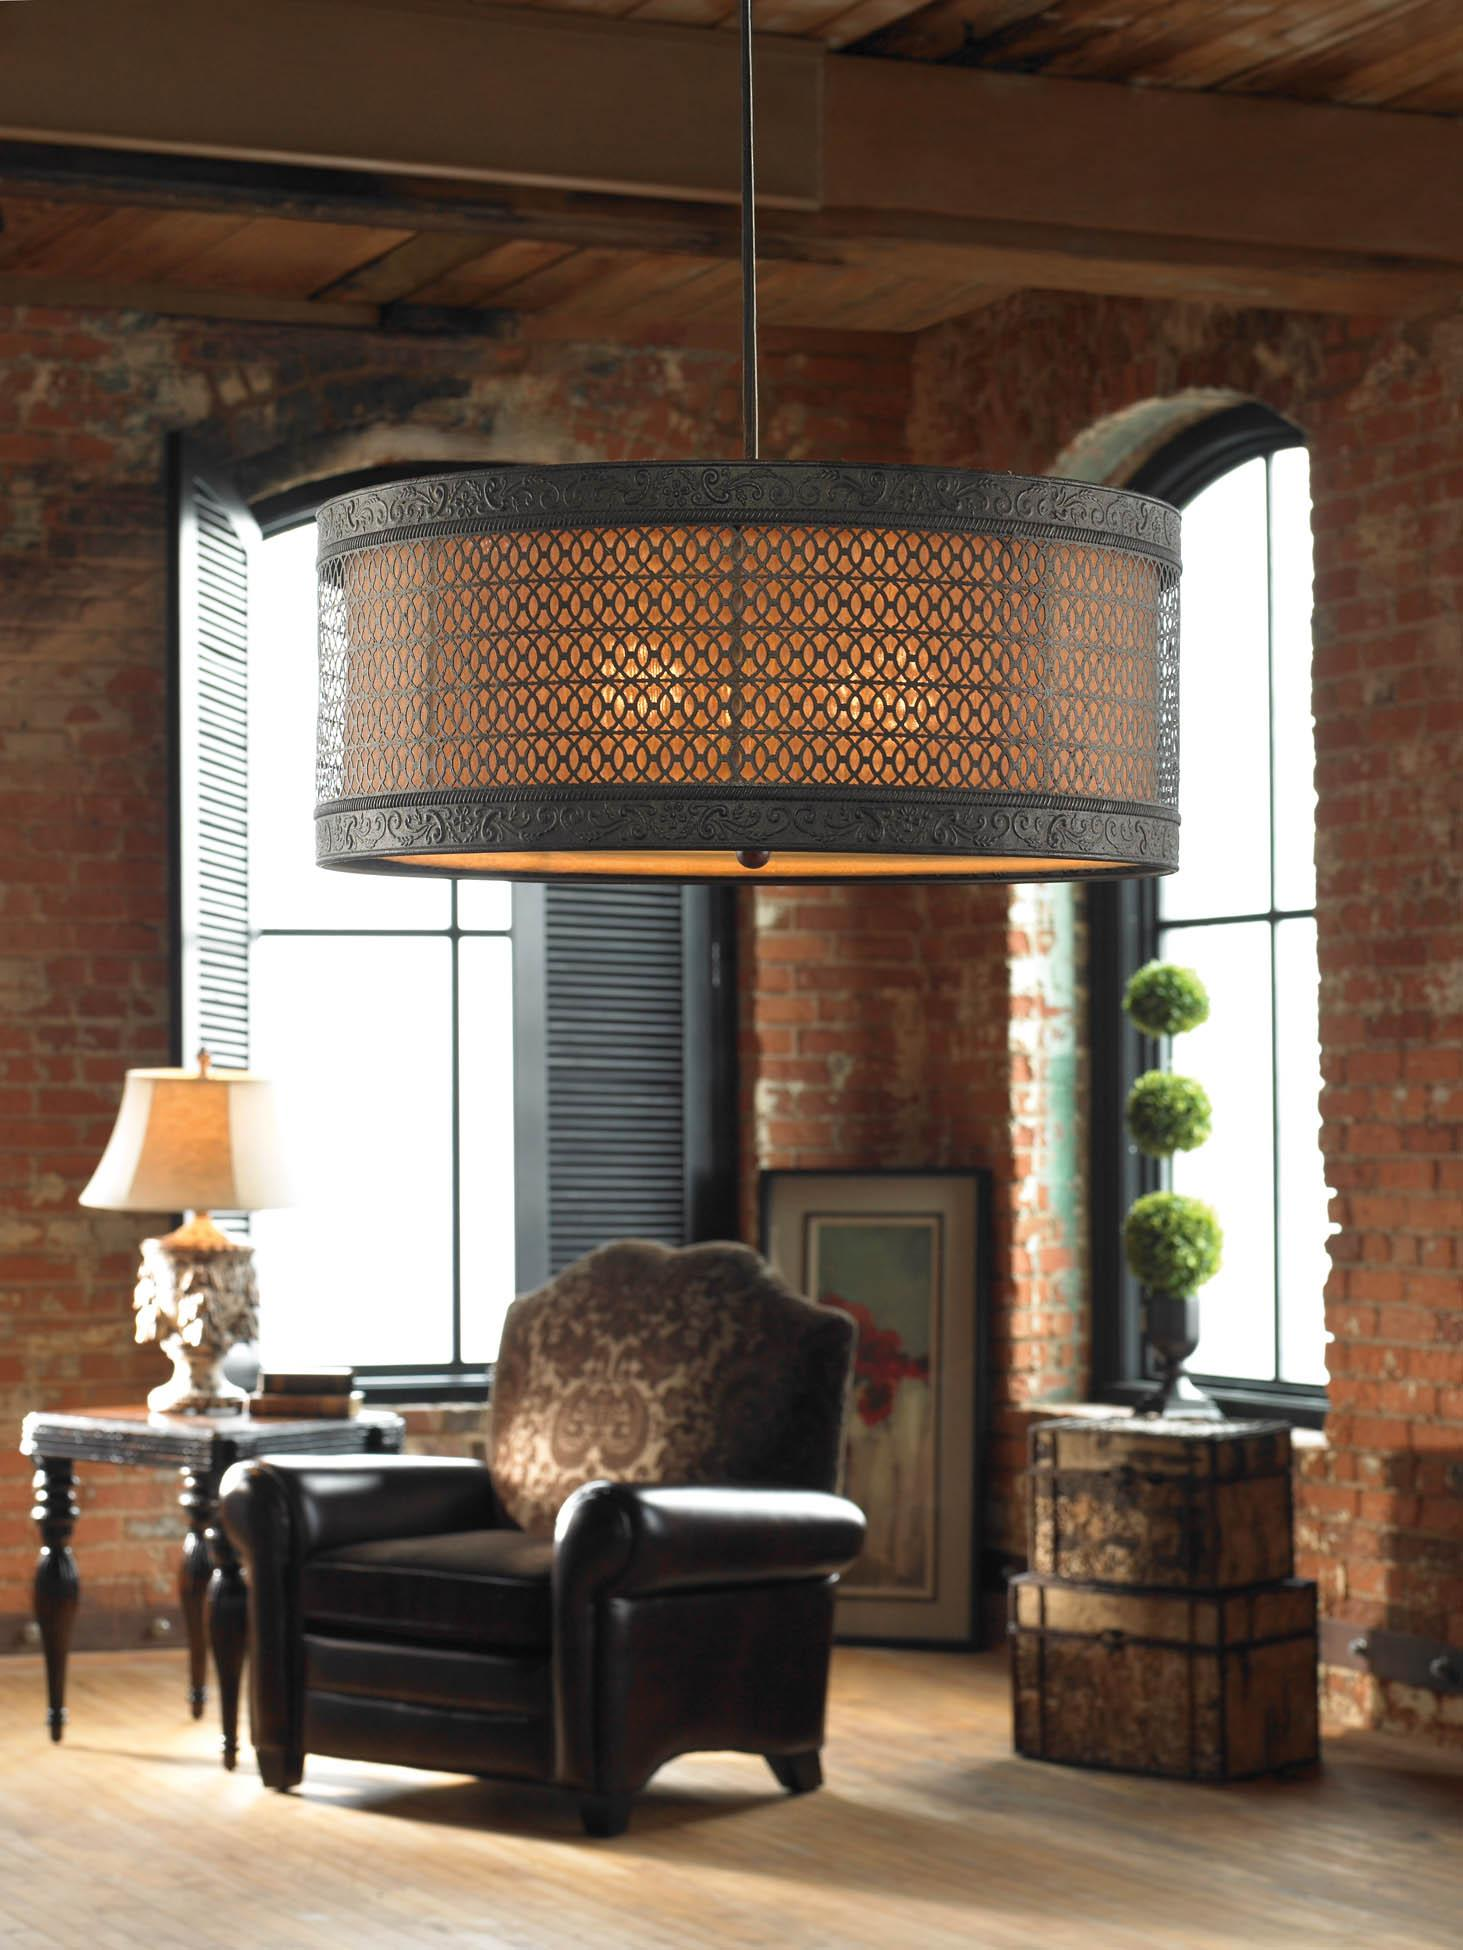 Uttermost Lighting Fixtures New Orleans 3 Light Hanging Shade - Item Number: 21891